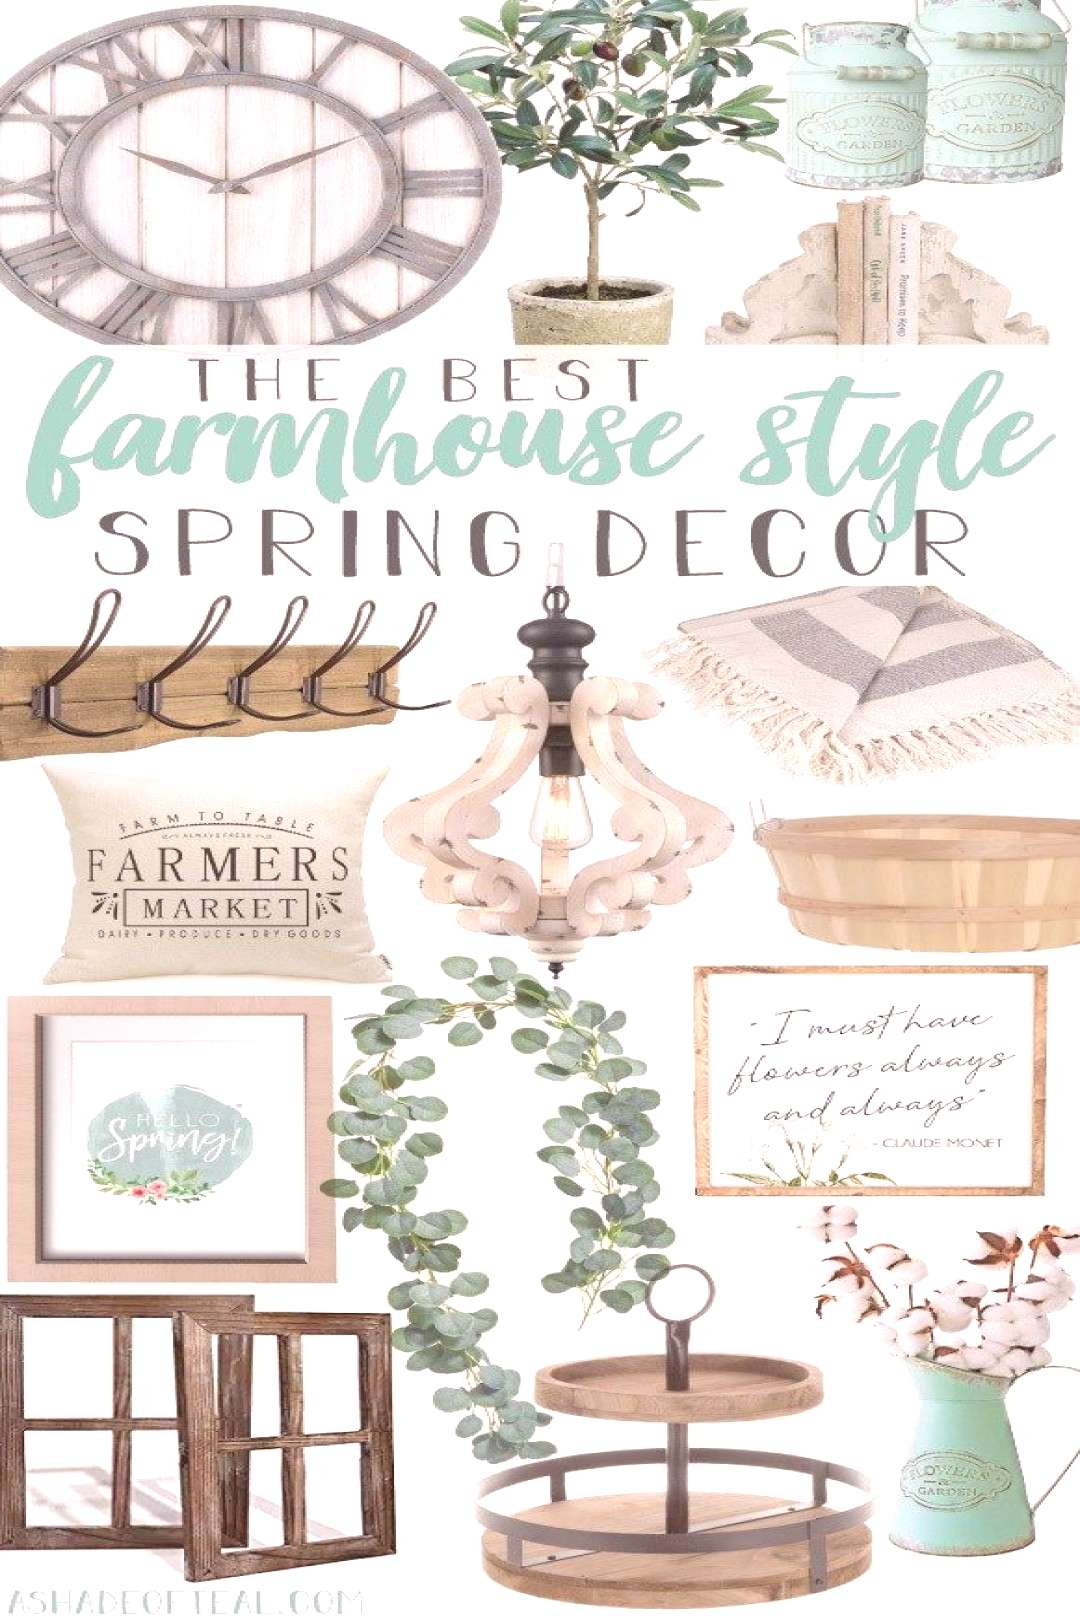 The Best Farmhouse Style Spring Decor. Ready to update for Spring? Then come shop with me and check